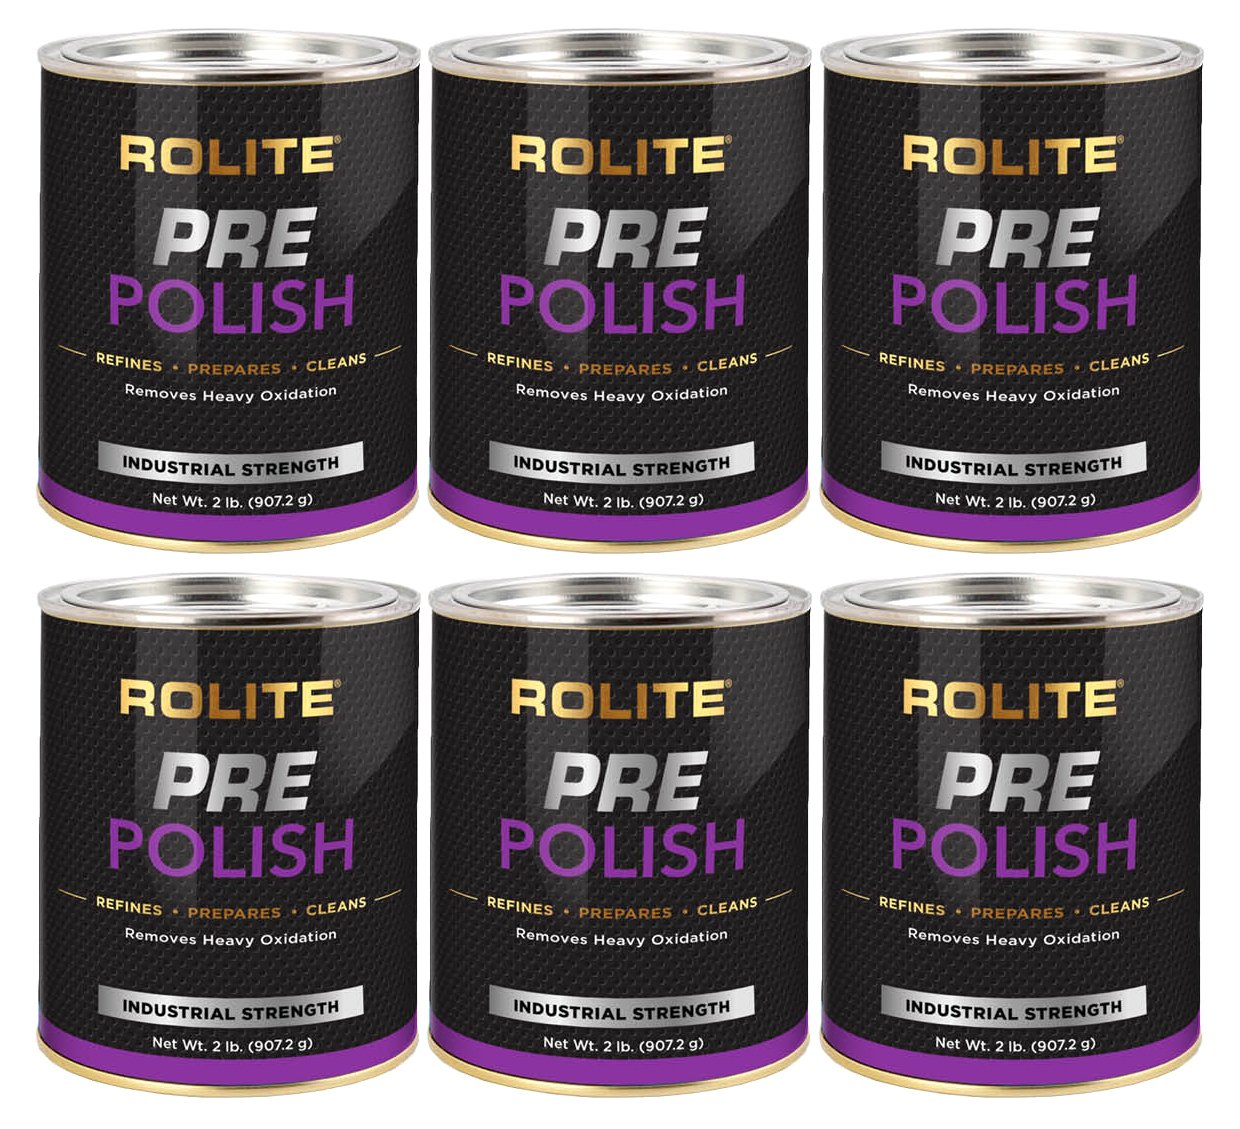 Rolite Pre-Polish (2lb) for Heavily Oxidized, Stained, Discolored and Corroded Metal, Clear Coated and Gel-Coated Surfaces 6 Pack